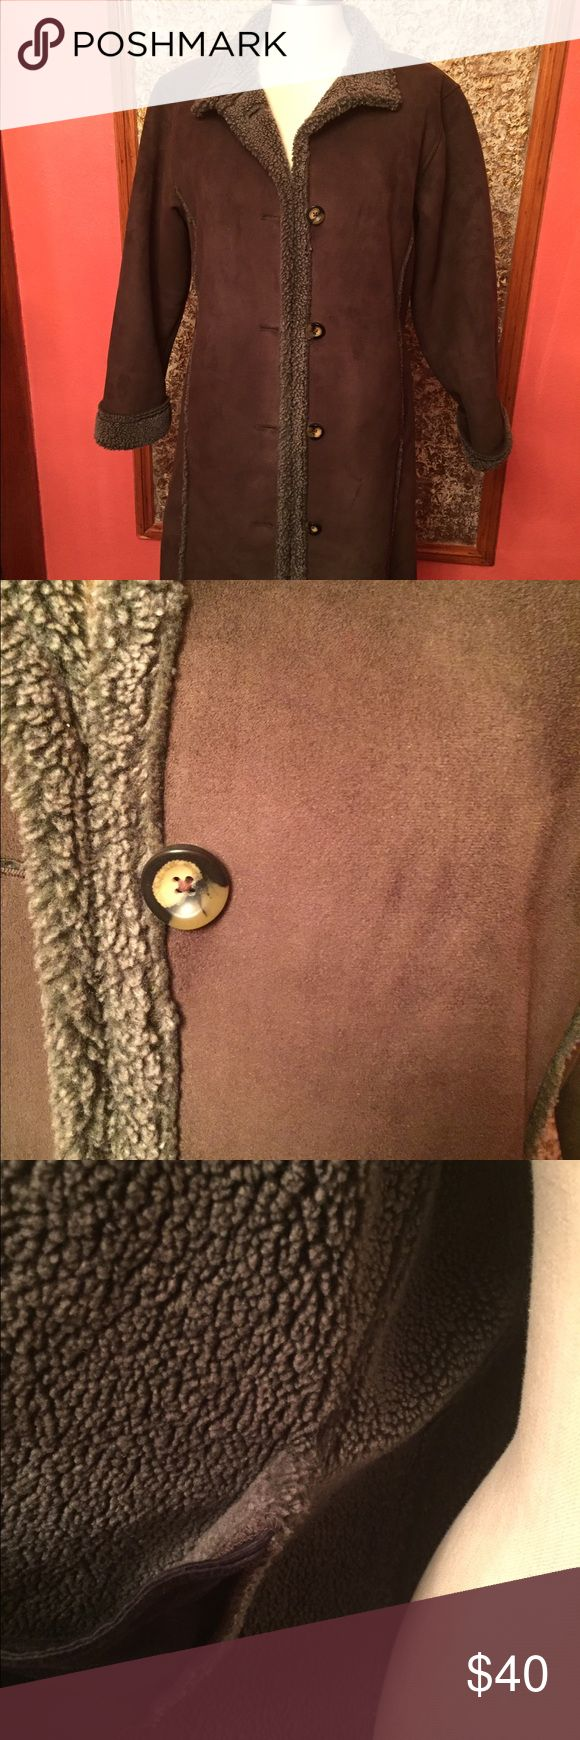 78+ Ideas About Army Green Jackets On Pinterest